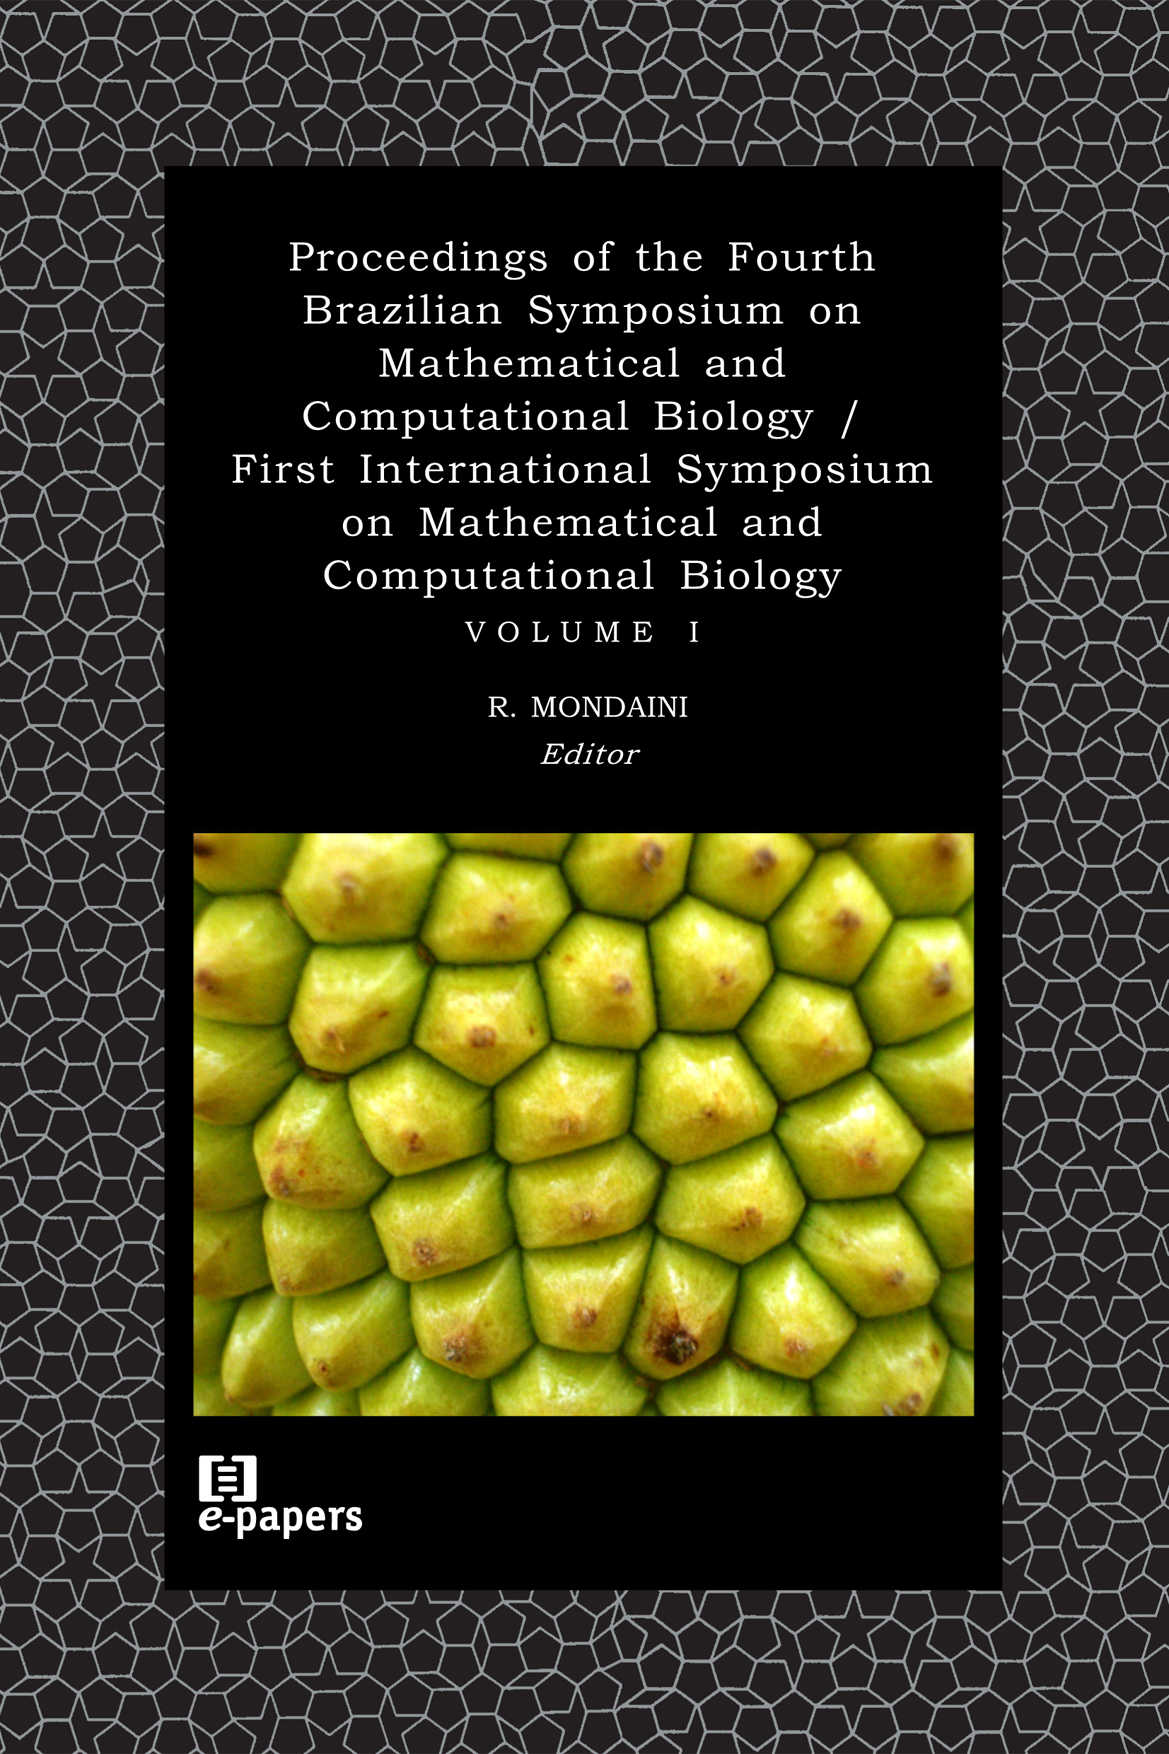 Proc. of the Fourth Brazilian Symp. on Mathematical and Computational Biology vol.1: First International Symposium on Mathematical and Comp Biology